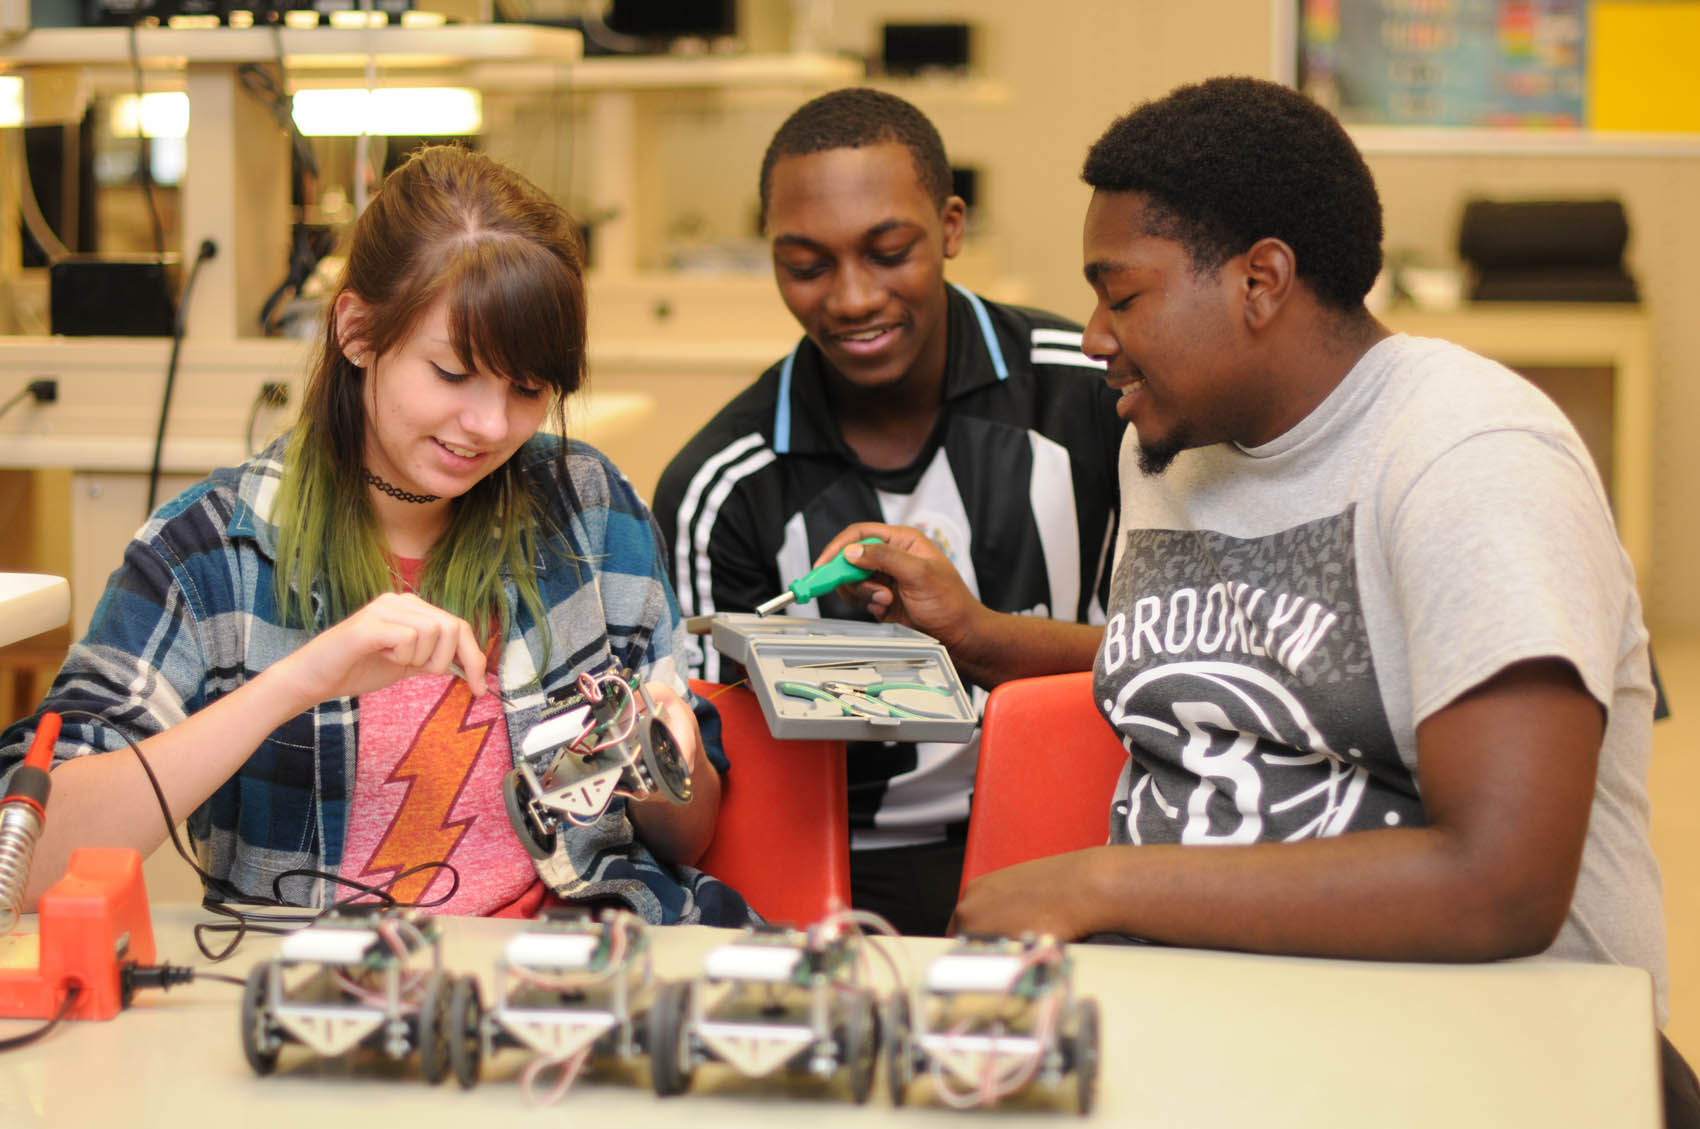 Click to enlarge,  Rising juniors Skye Touchet of Overhills High School, Trezivont Woods of Harnett Central High School, and Nataniel Brown of Overhills High School work on a Robotics assignment for CCCC's Upward Bound Math and Science program under the direction of Electronics Engineering Technology Lead Instructor Sandra Castonguay.